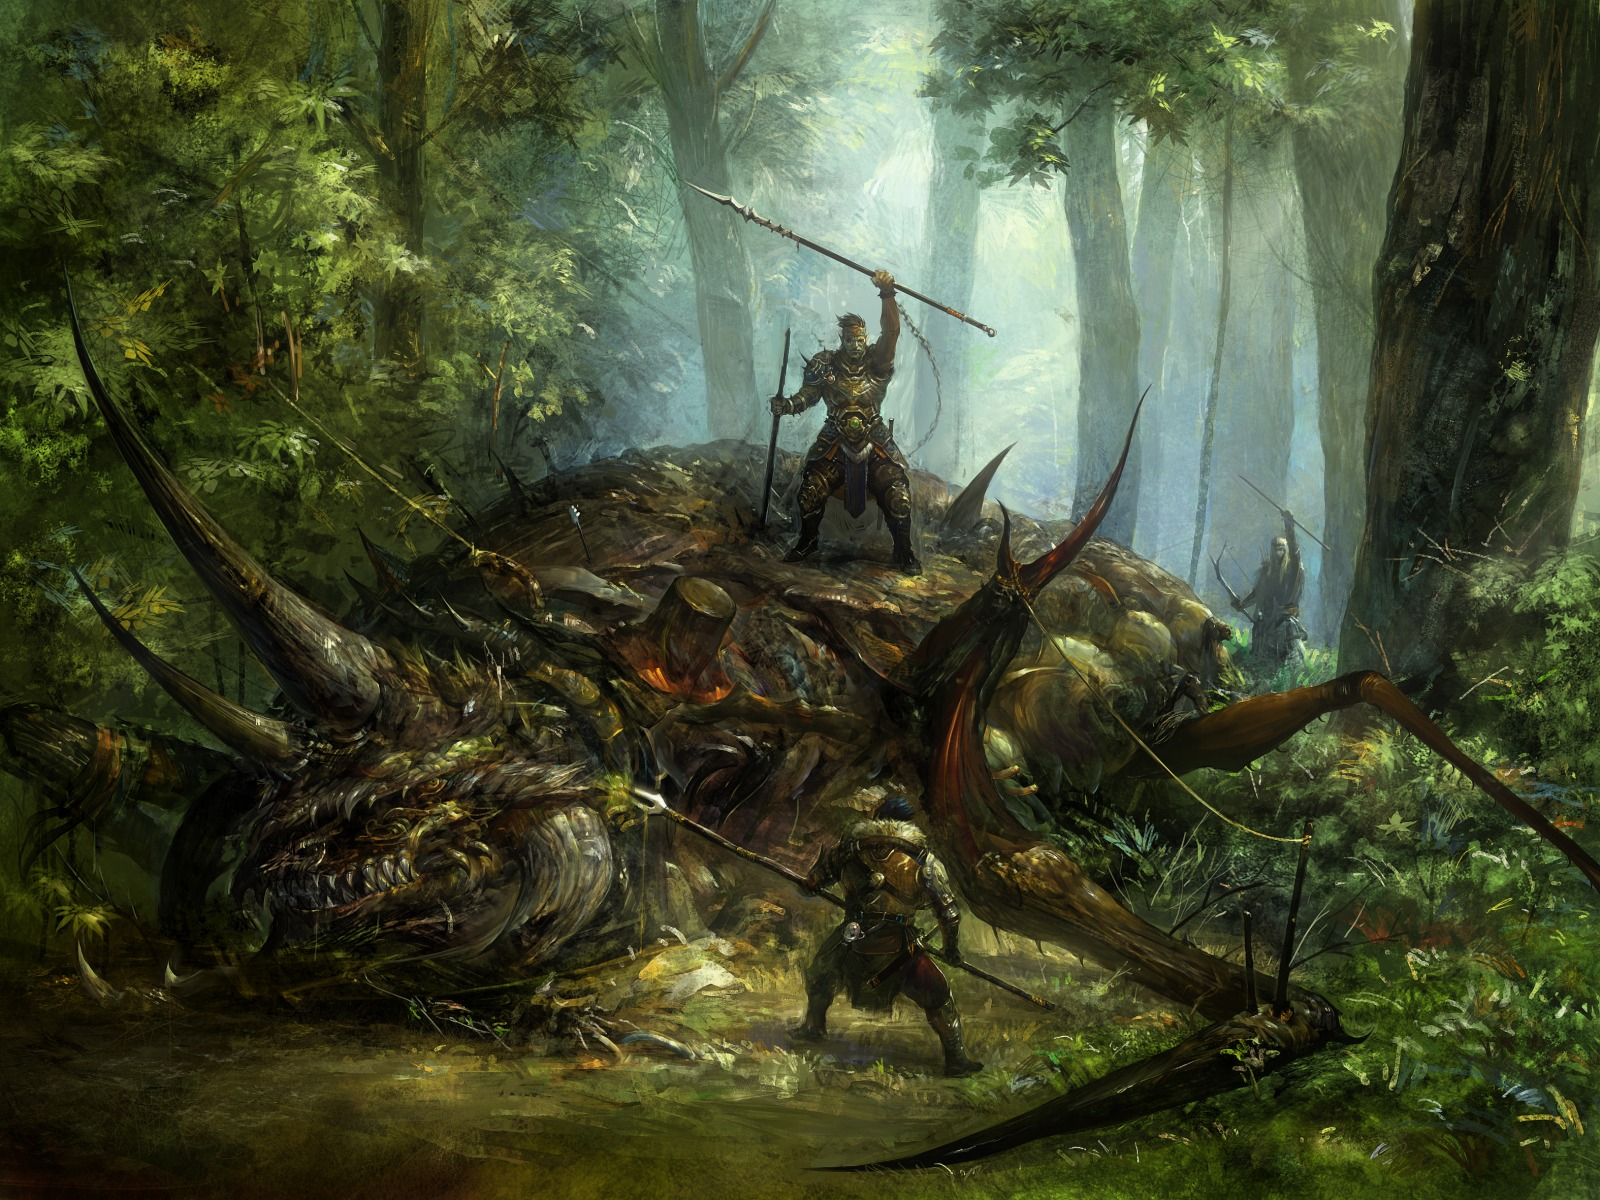 1600x1200_14661___2d_illustration_fantasy_hunters_monster_dinosaur_picture_image_digital_art.jpg